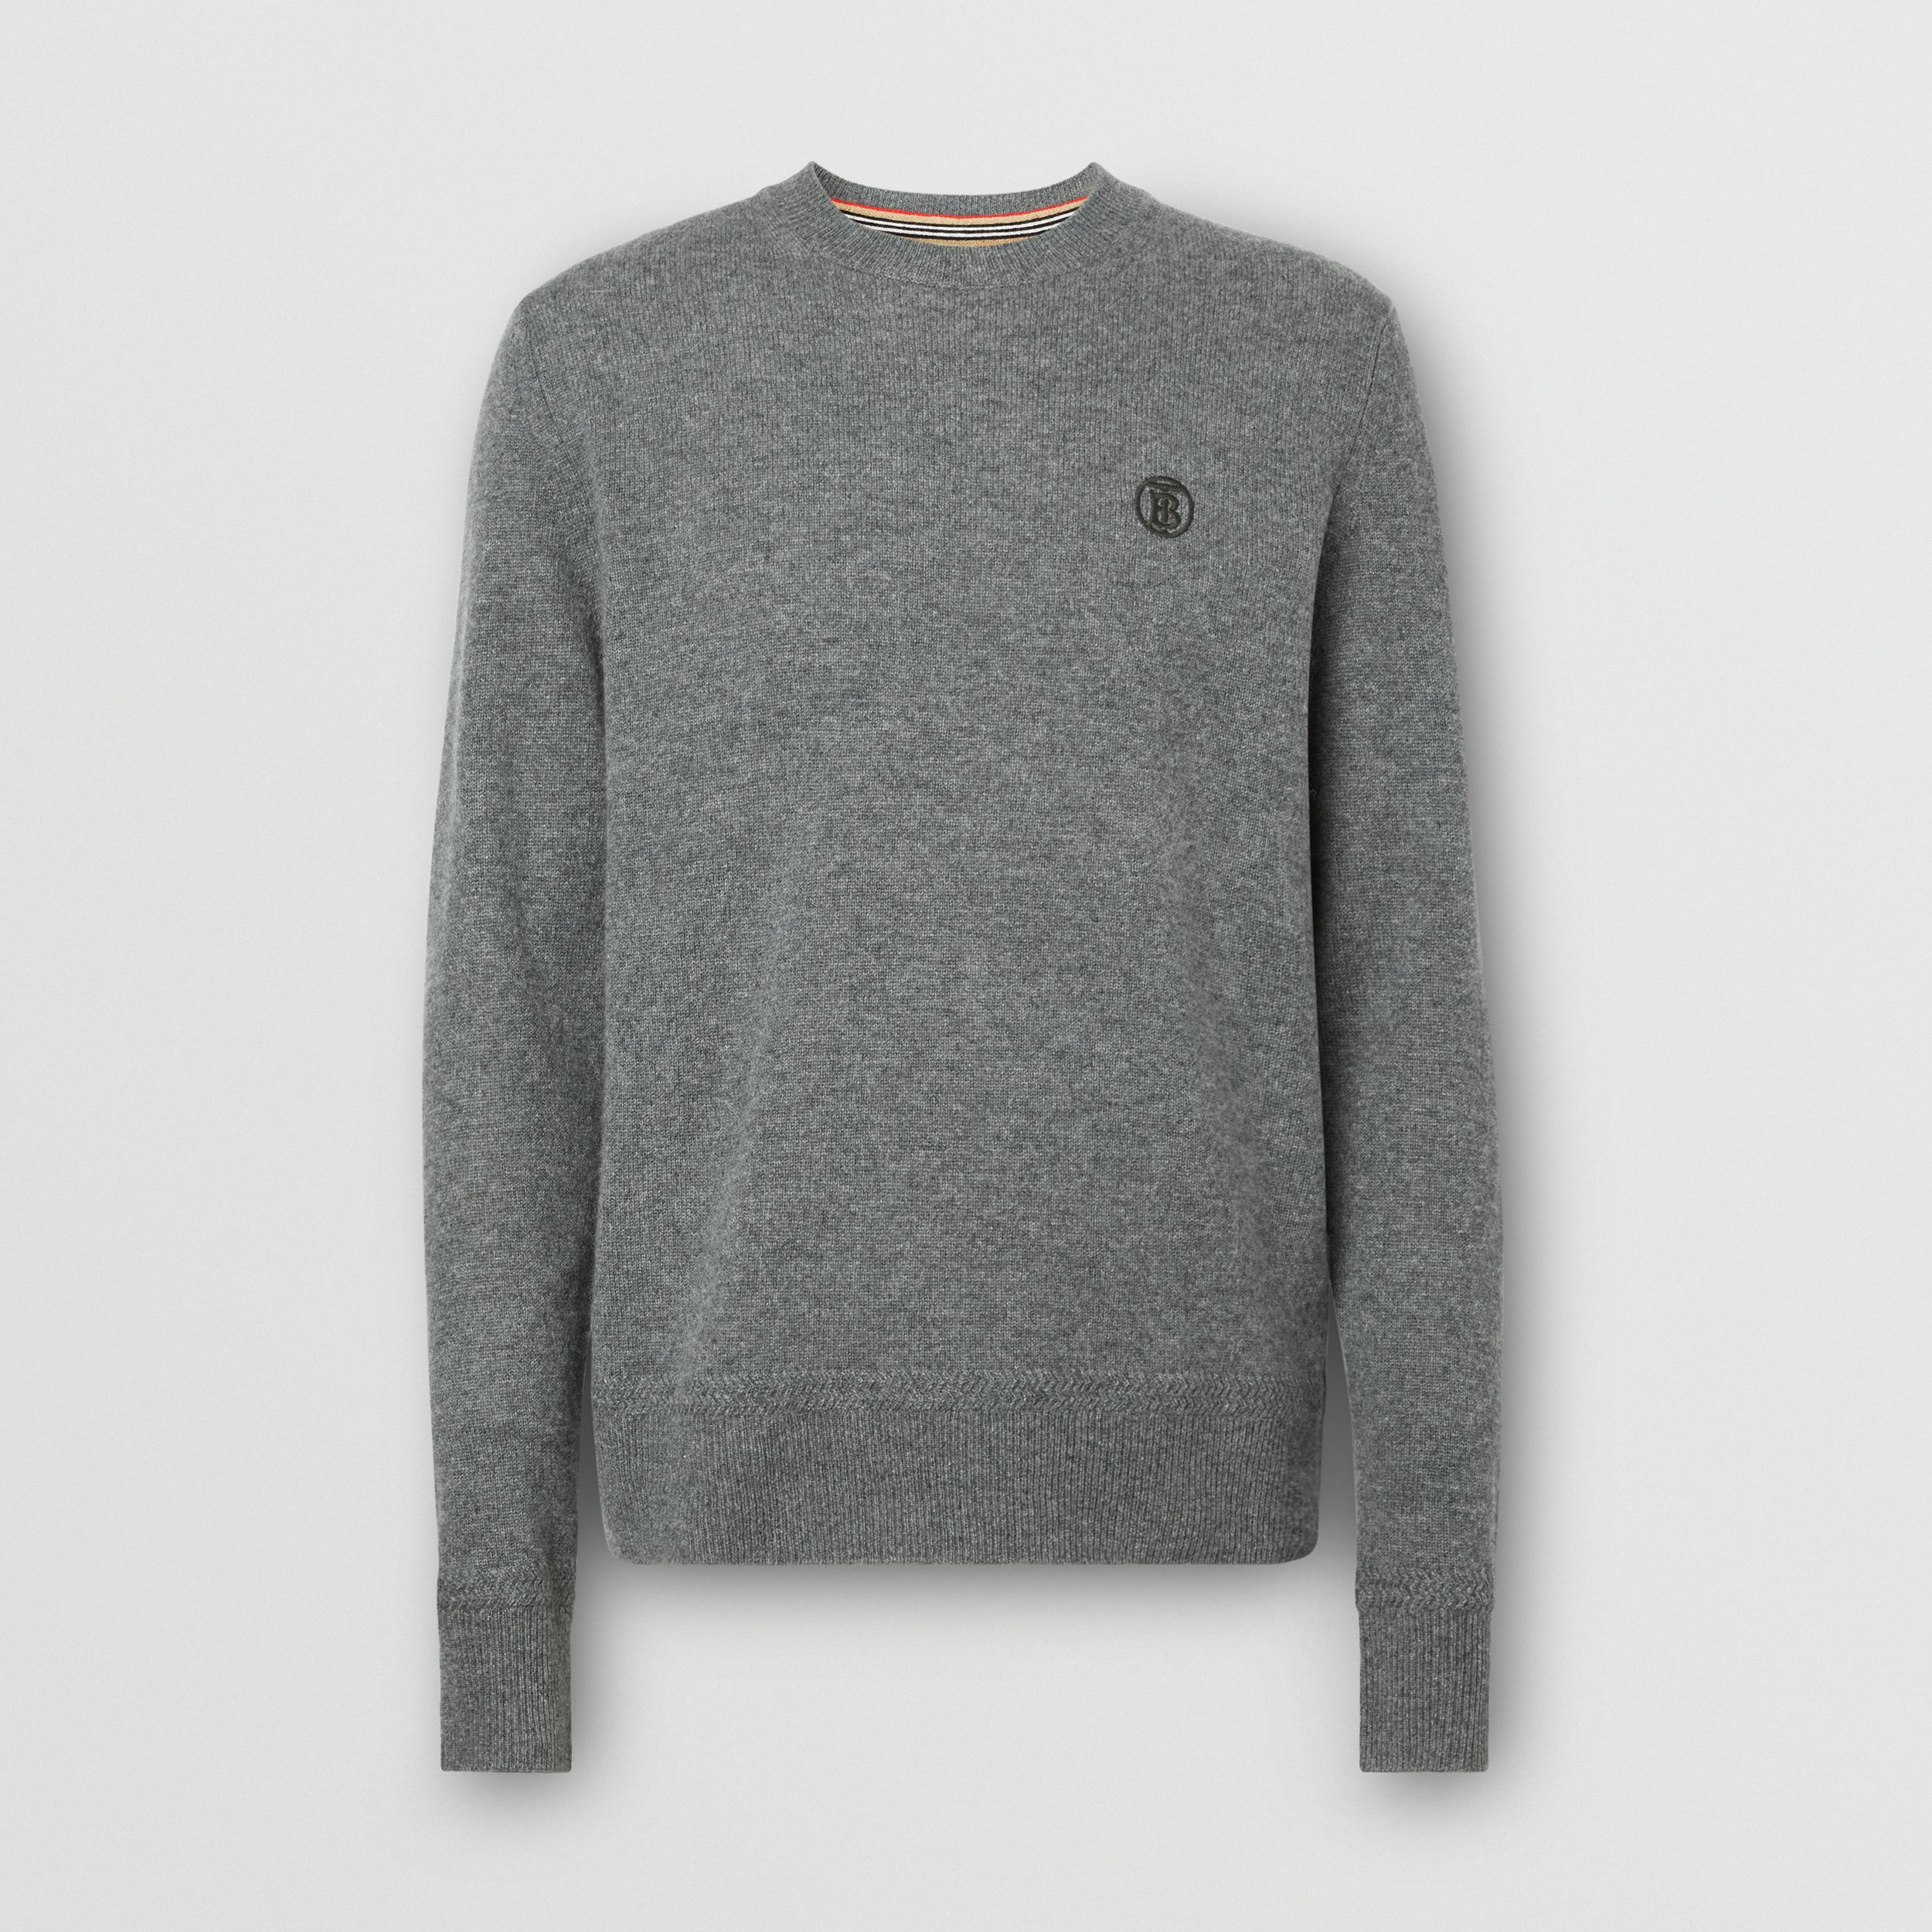 Monogram Motif Cashmere Sweater in Mid Grey Melange - Men | Burberry - 4